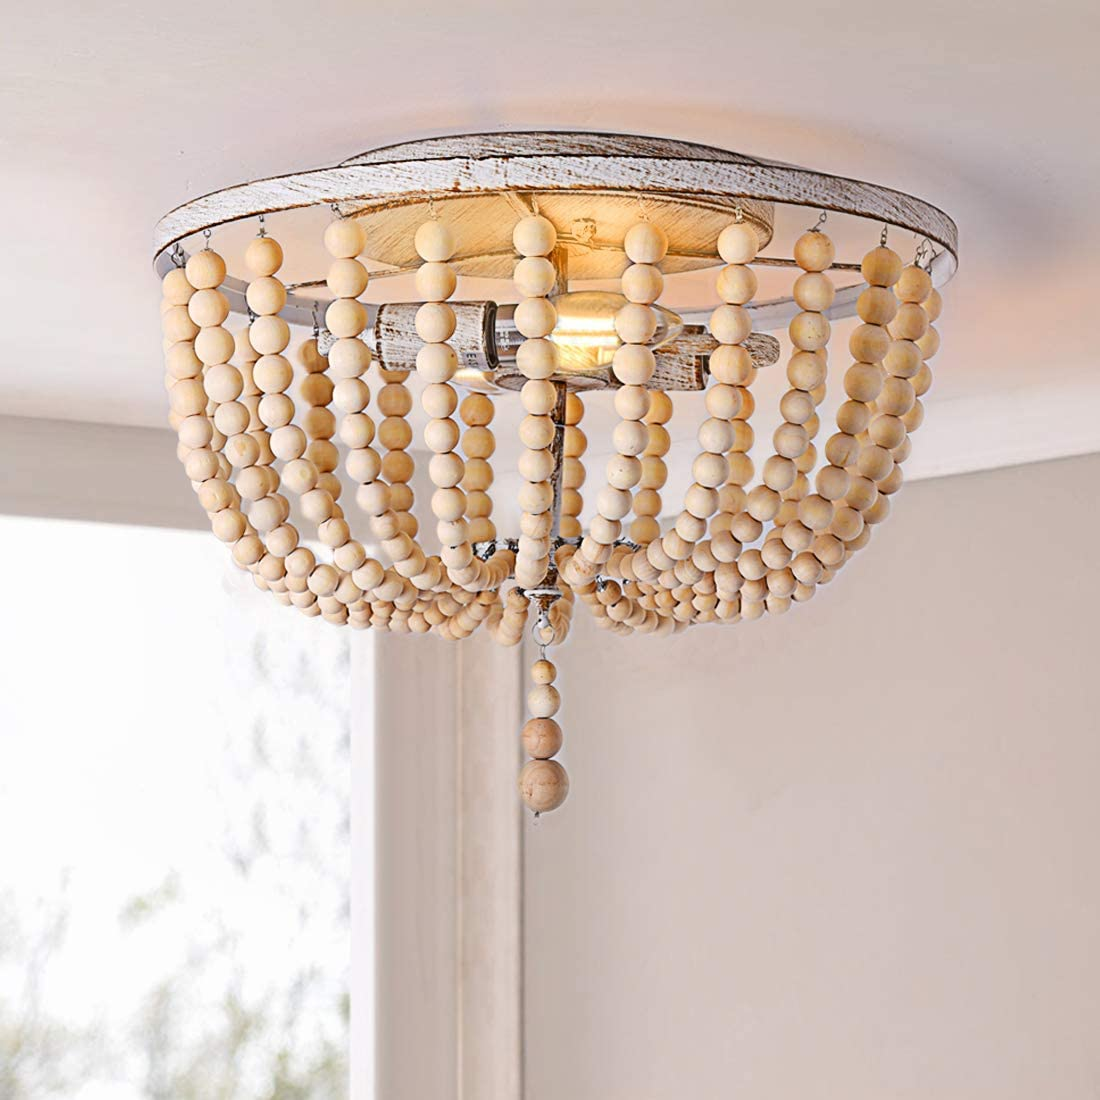 Flush Mount Ceiling Light, 2 Lights Wood Beaded Chandelier,Farmhouse Lighting Fixtures,Hand Painted Oak Wood Finish,for Entryway, Hallway, Foyer,Bedroom and Stairway